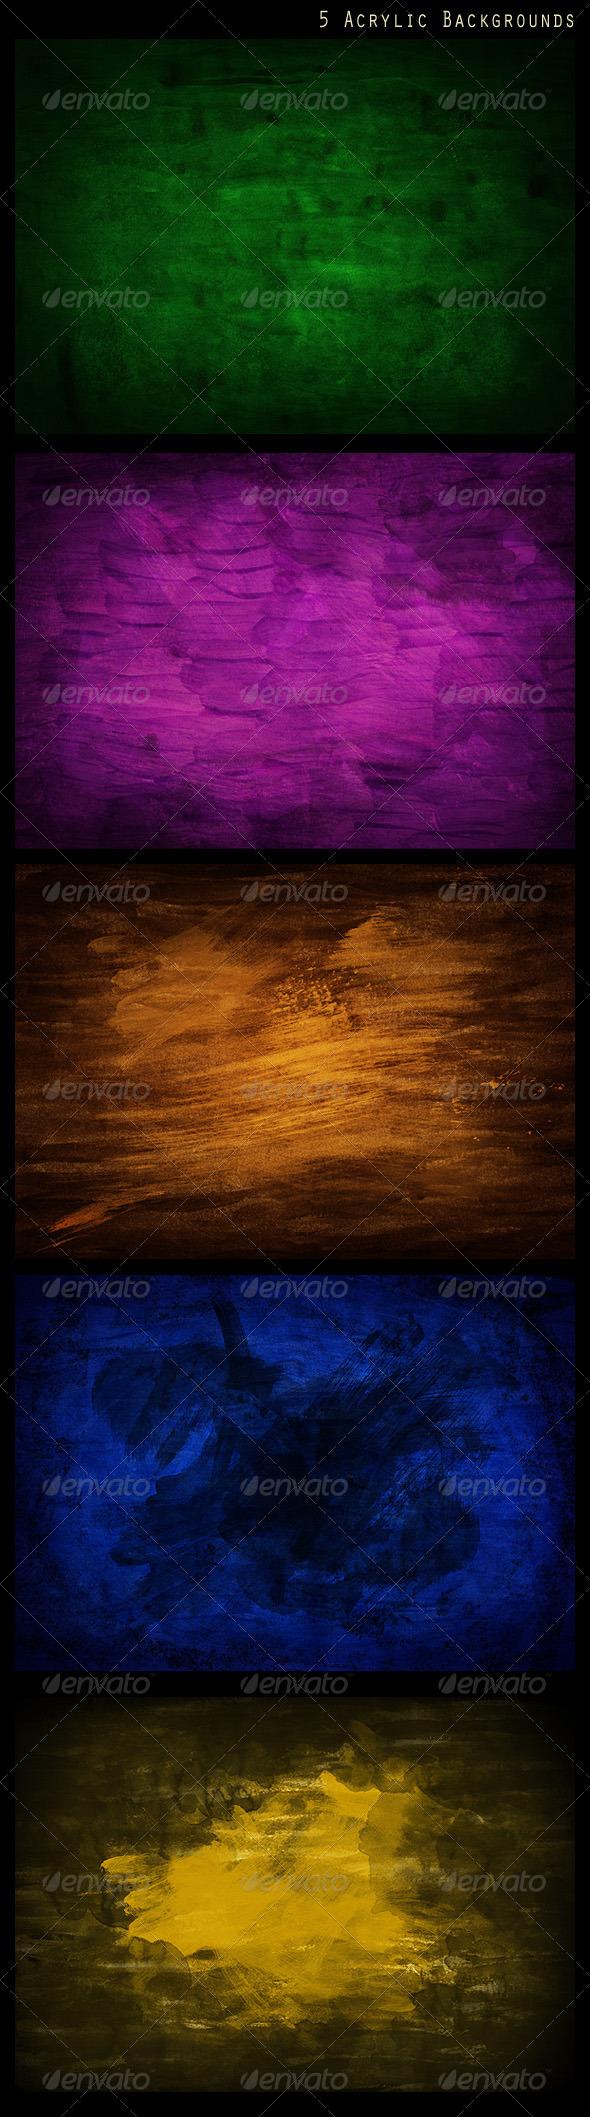 5 Acrylic Backgrounds - Backgrounds Graphics